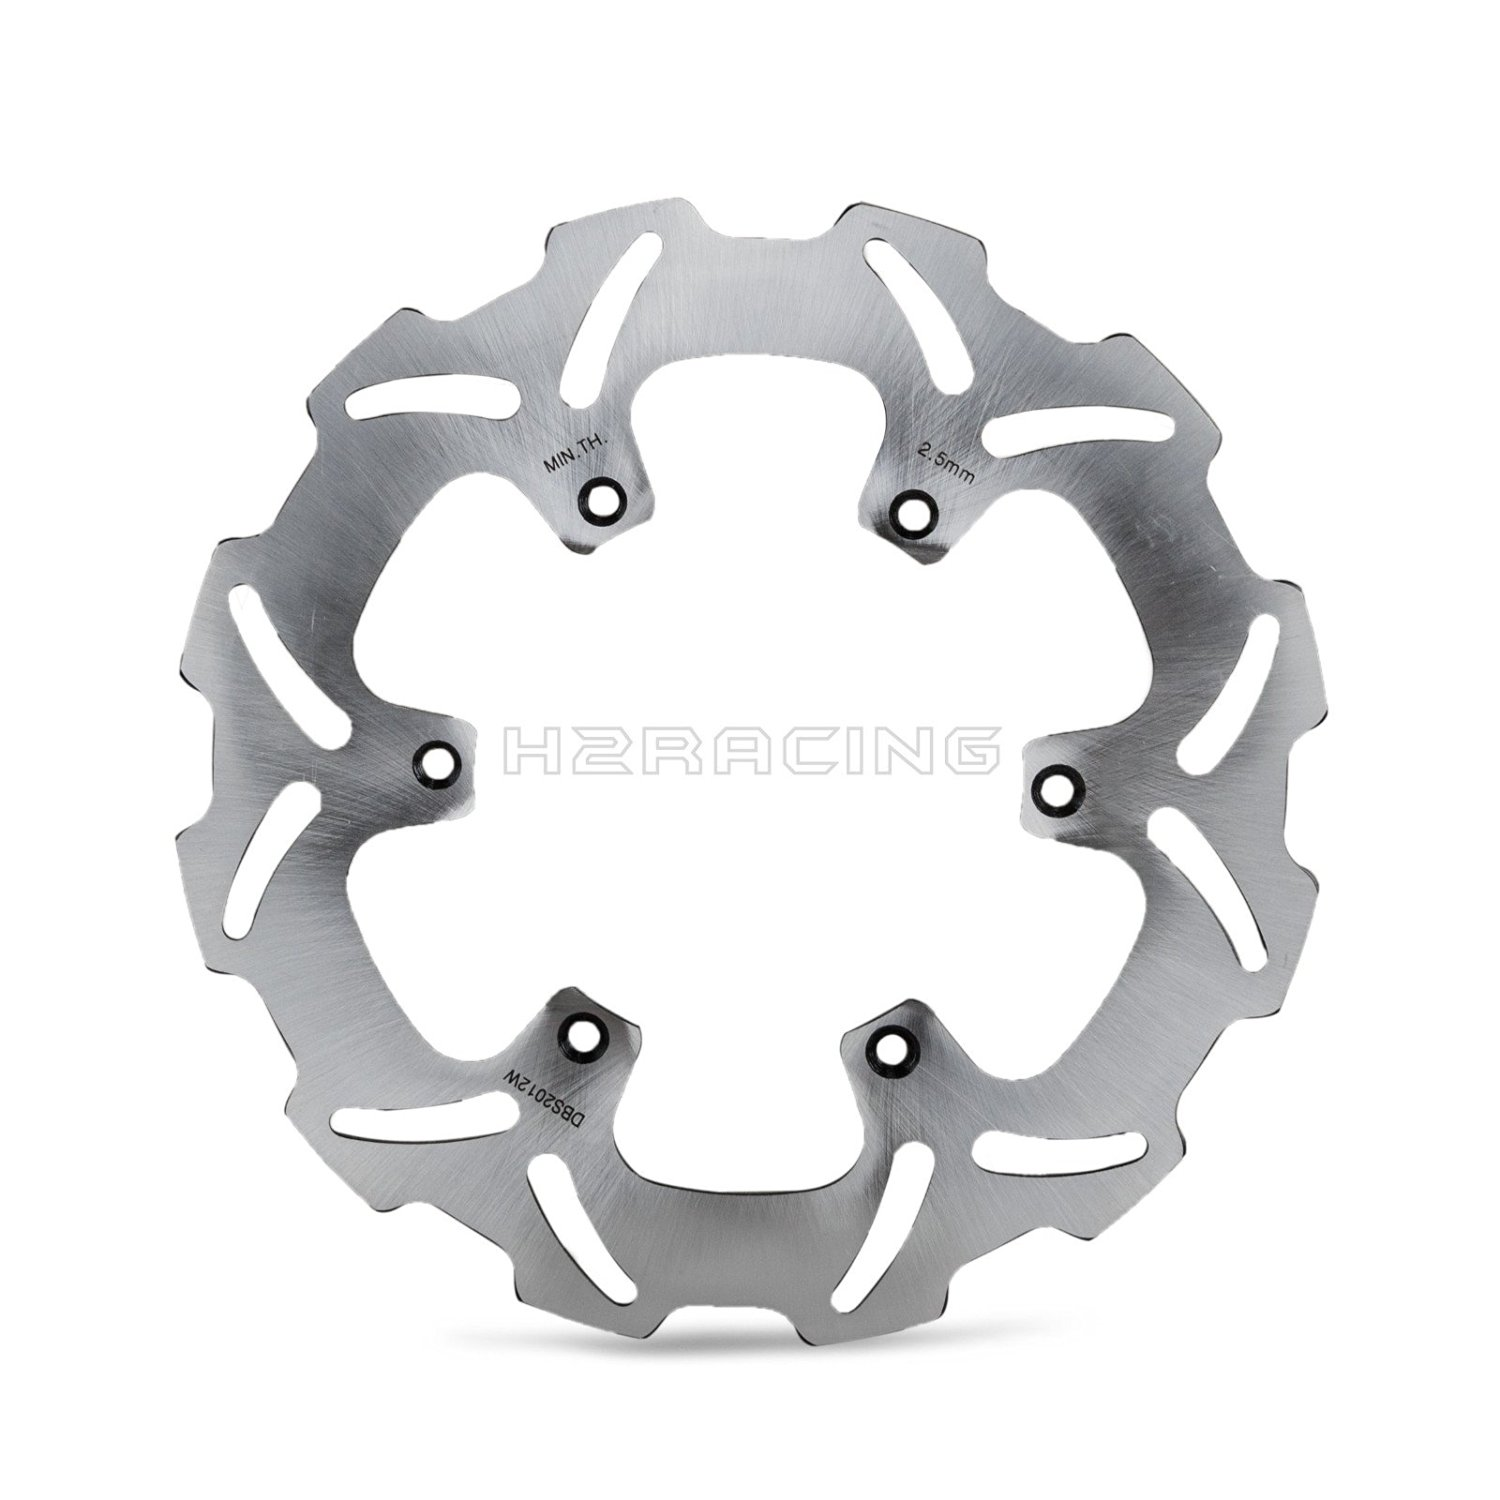 H2RACING 250mm Wave Rear Brake Disc Rotor for Suzuki RM125 1989-2009 RM250 1989-2012?RMX250S 1992-1998 YZ426F/WR426F 2001-2002 WR125/WR250 2001-2007 DRZ400E 2000-2008 DRZ400S 2000-2009?